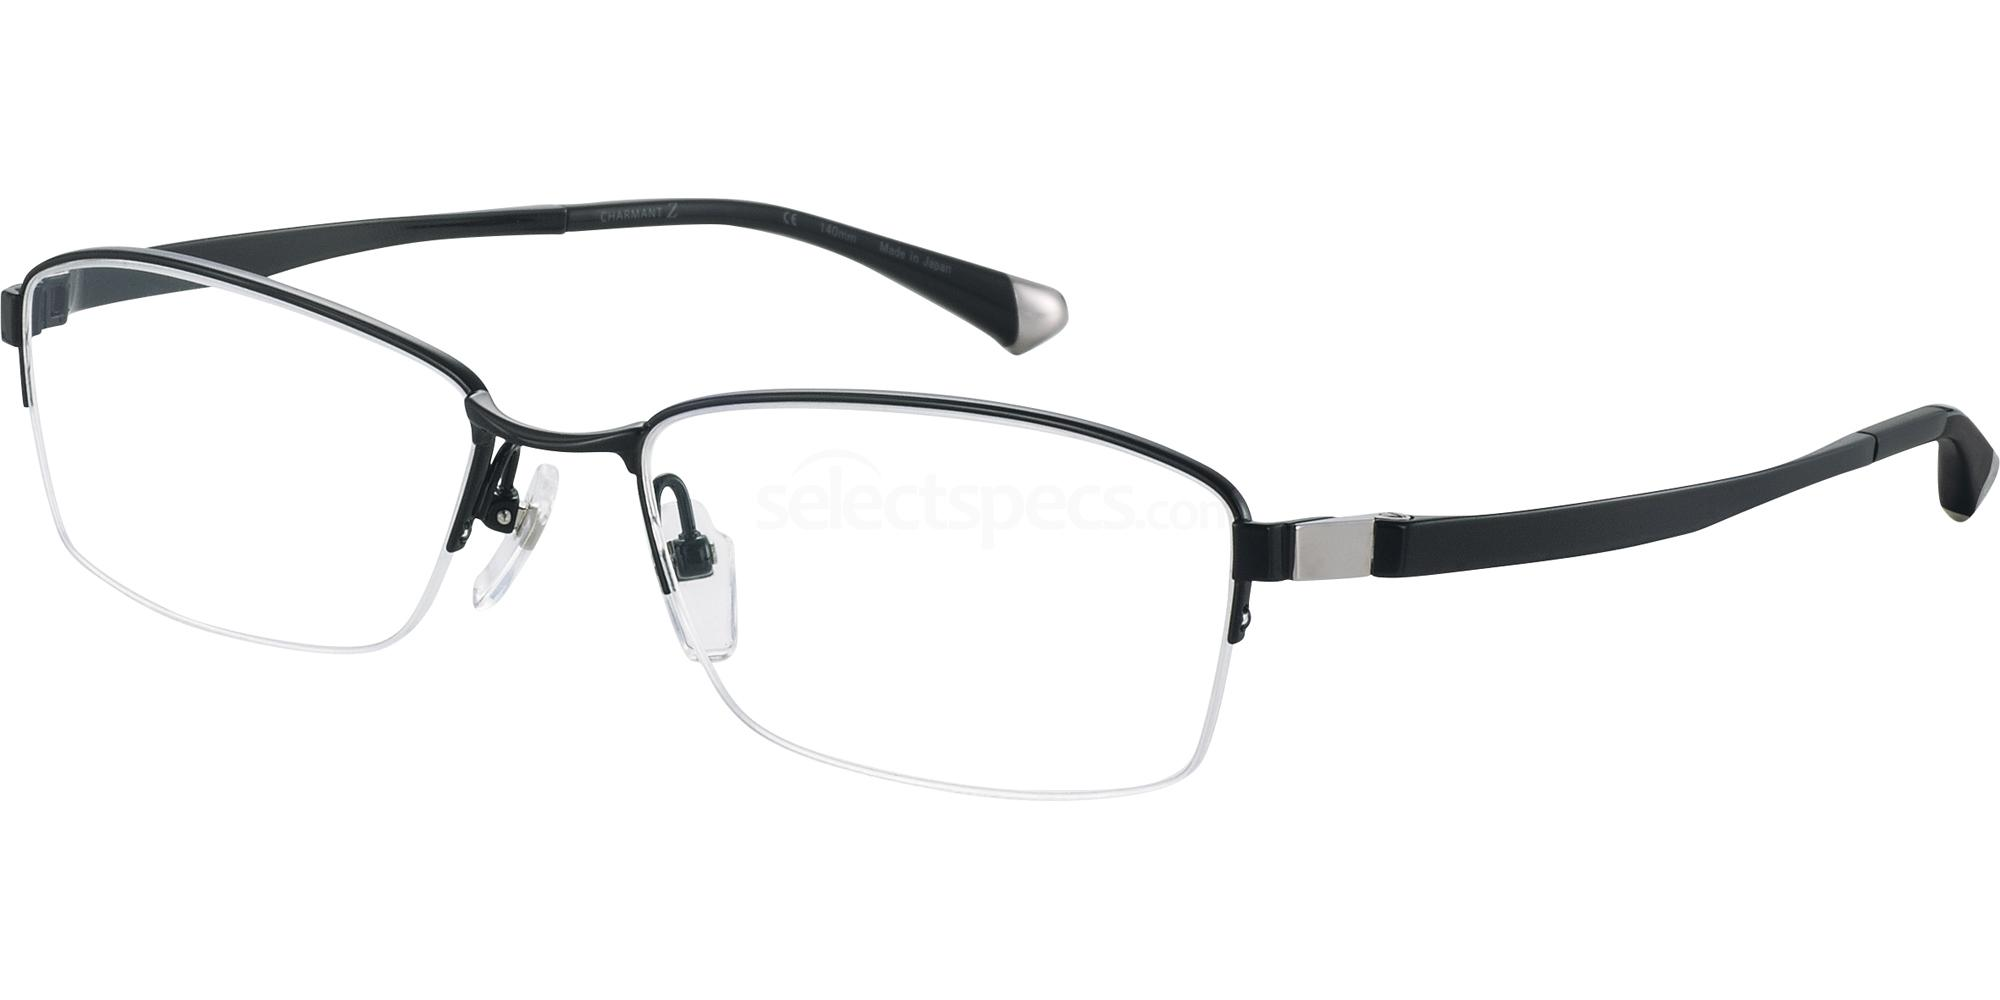 BK ZT19829 Glasses, Charmant Z